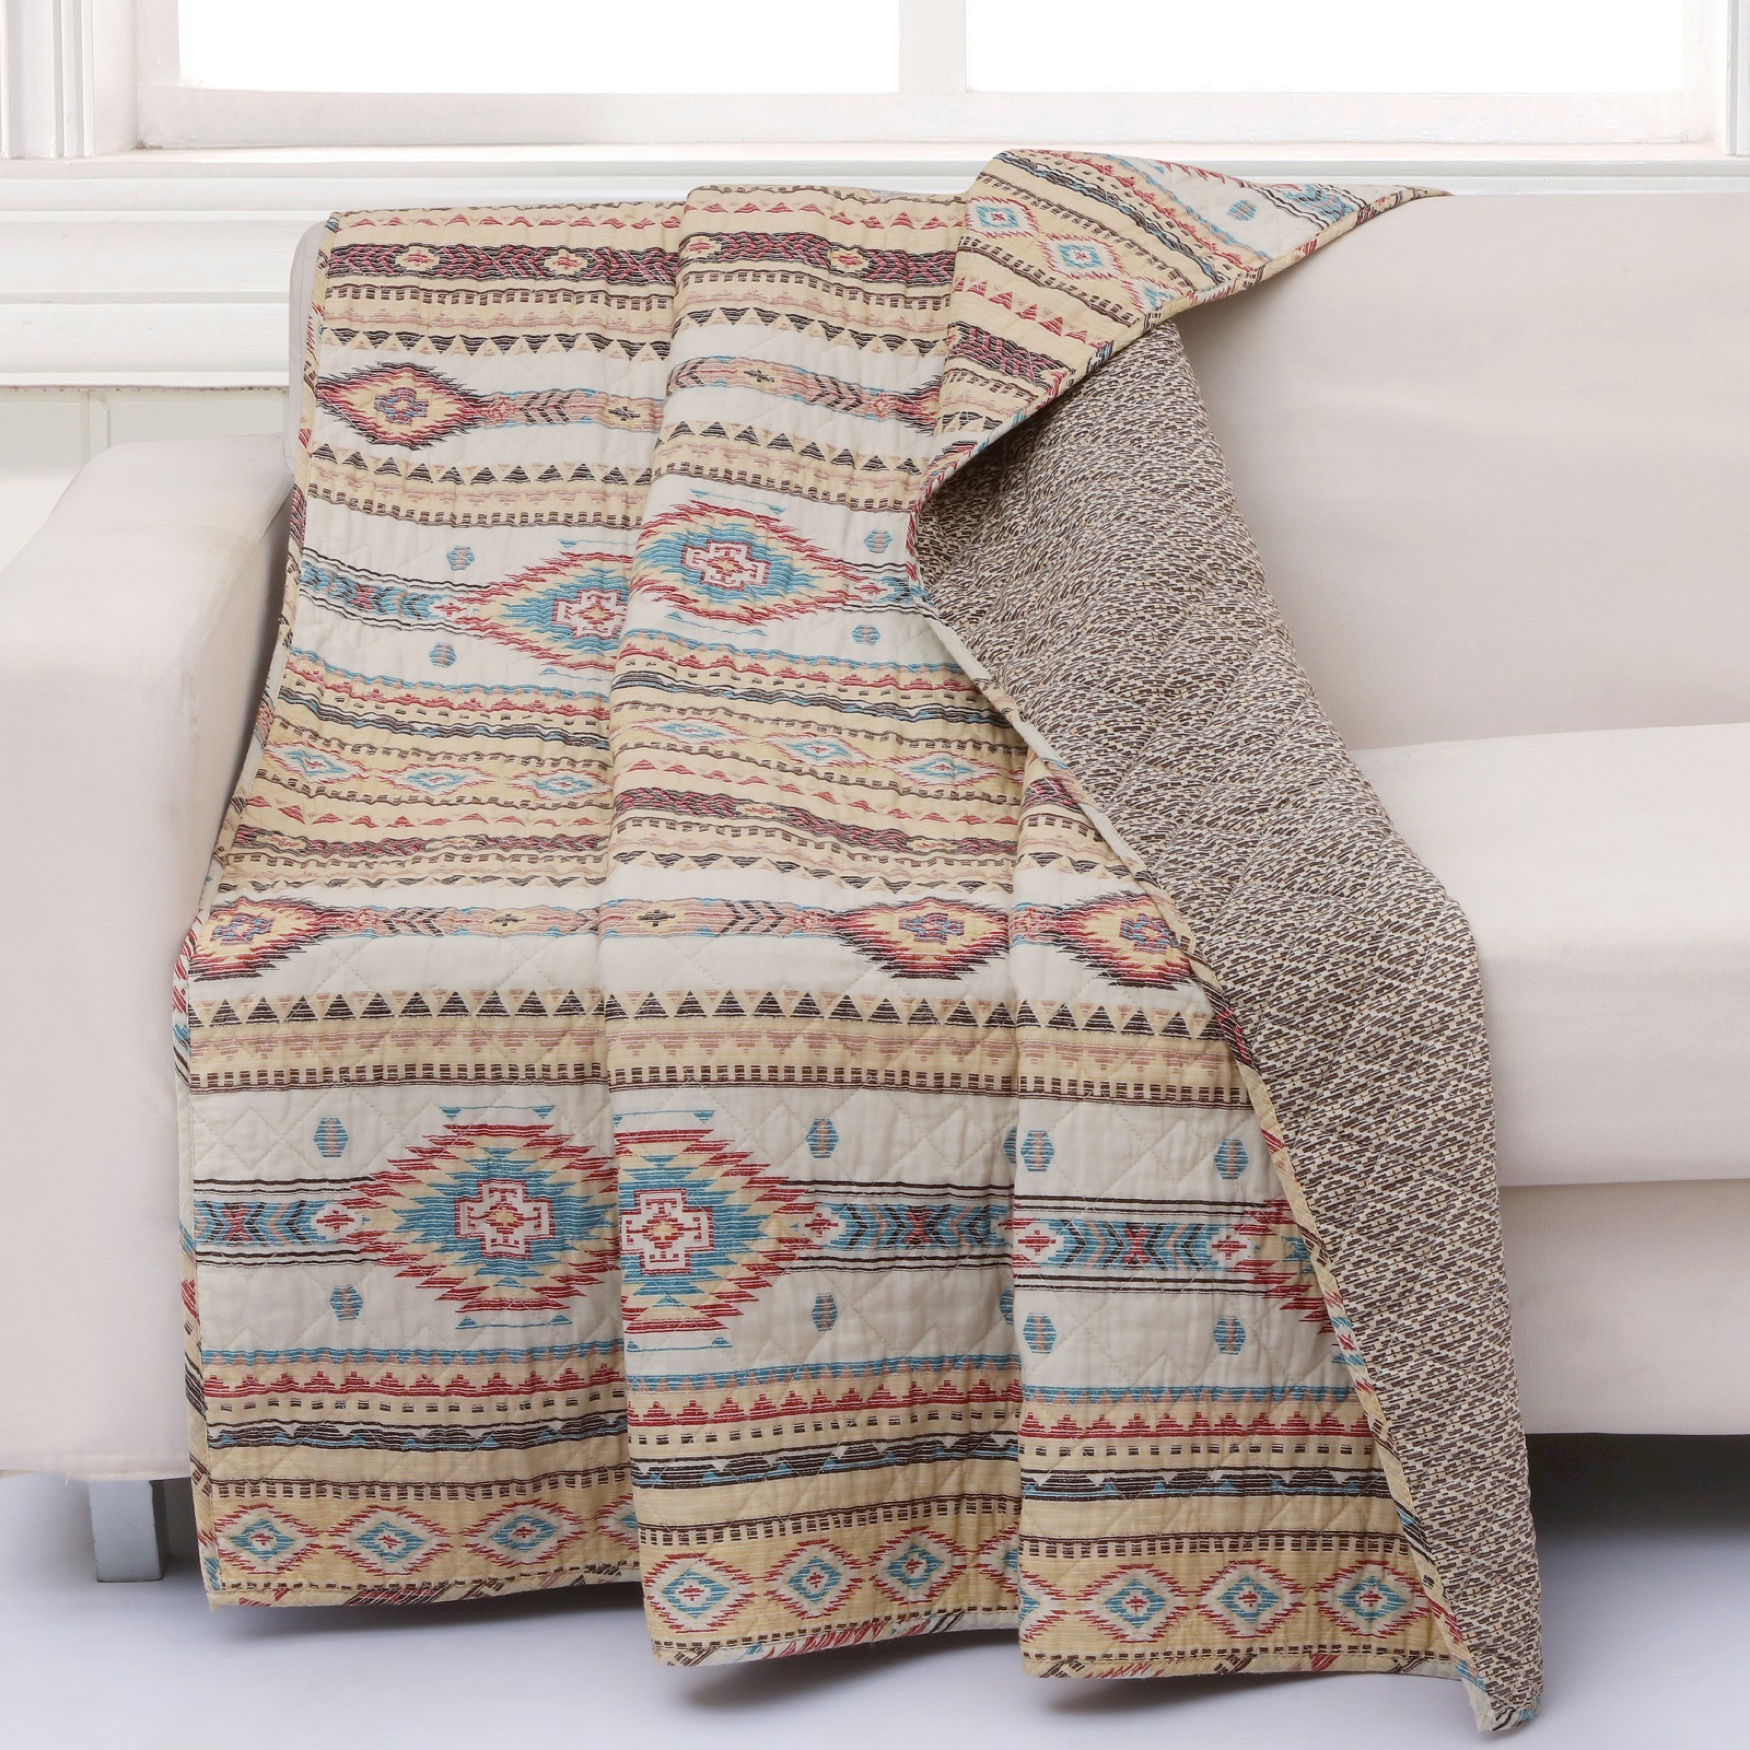 Barefoot Bungalow Phoenix Quilted Throw Blanket, TAN